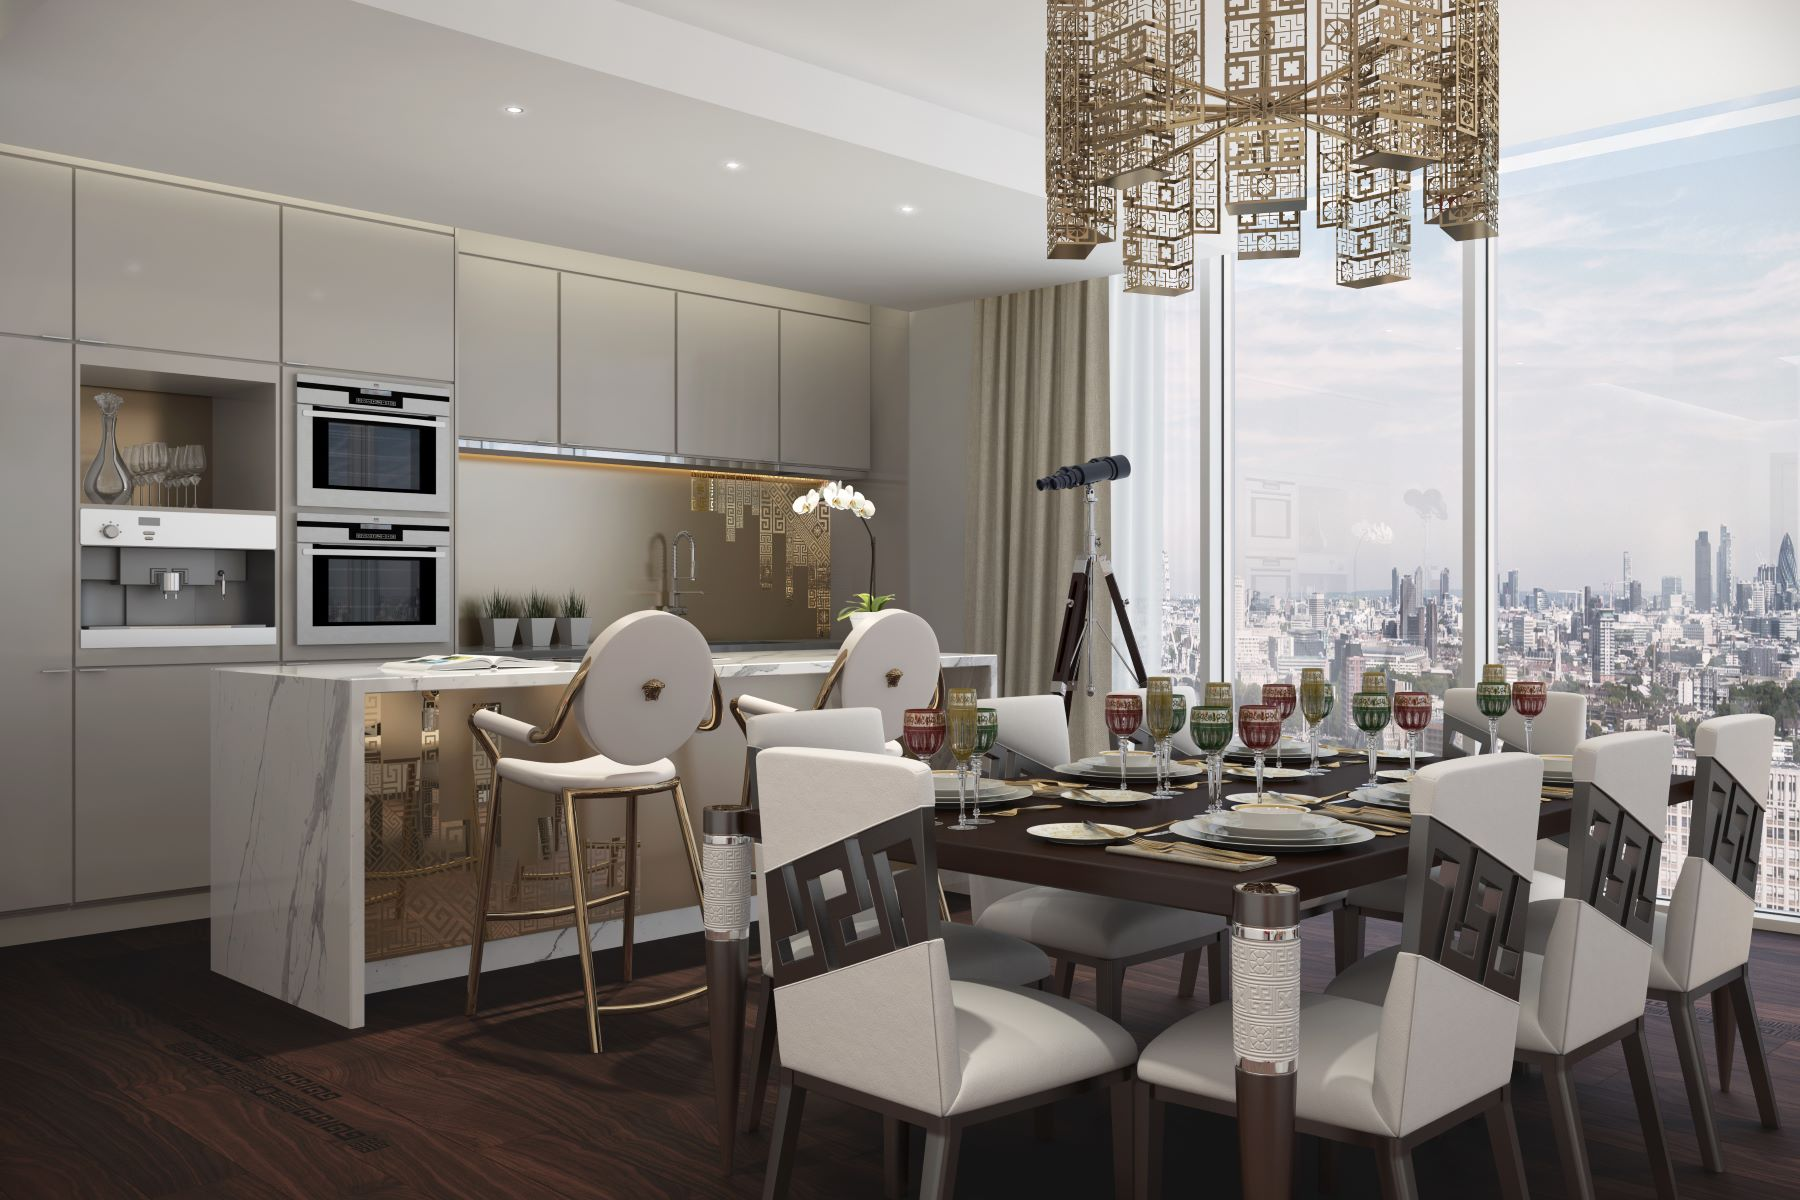 Apartments for Sale at The Tower, Nine Elms, SW8 Flat 4203, The Tower London, England SW8 1SQ United Kingdom